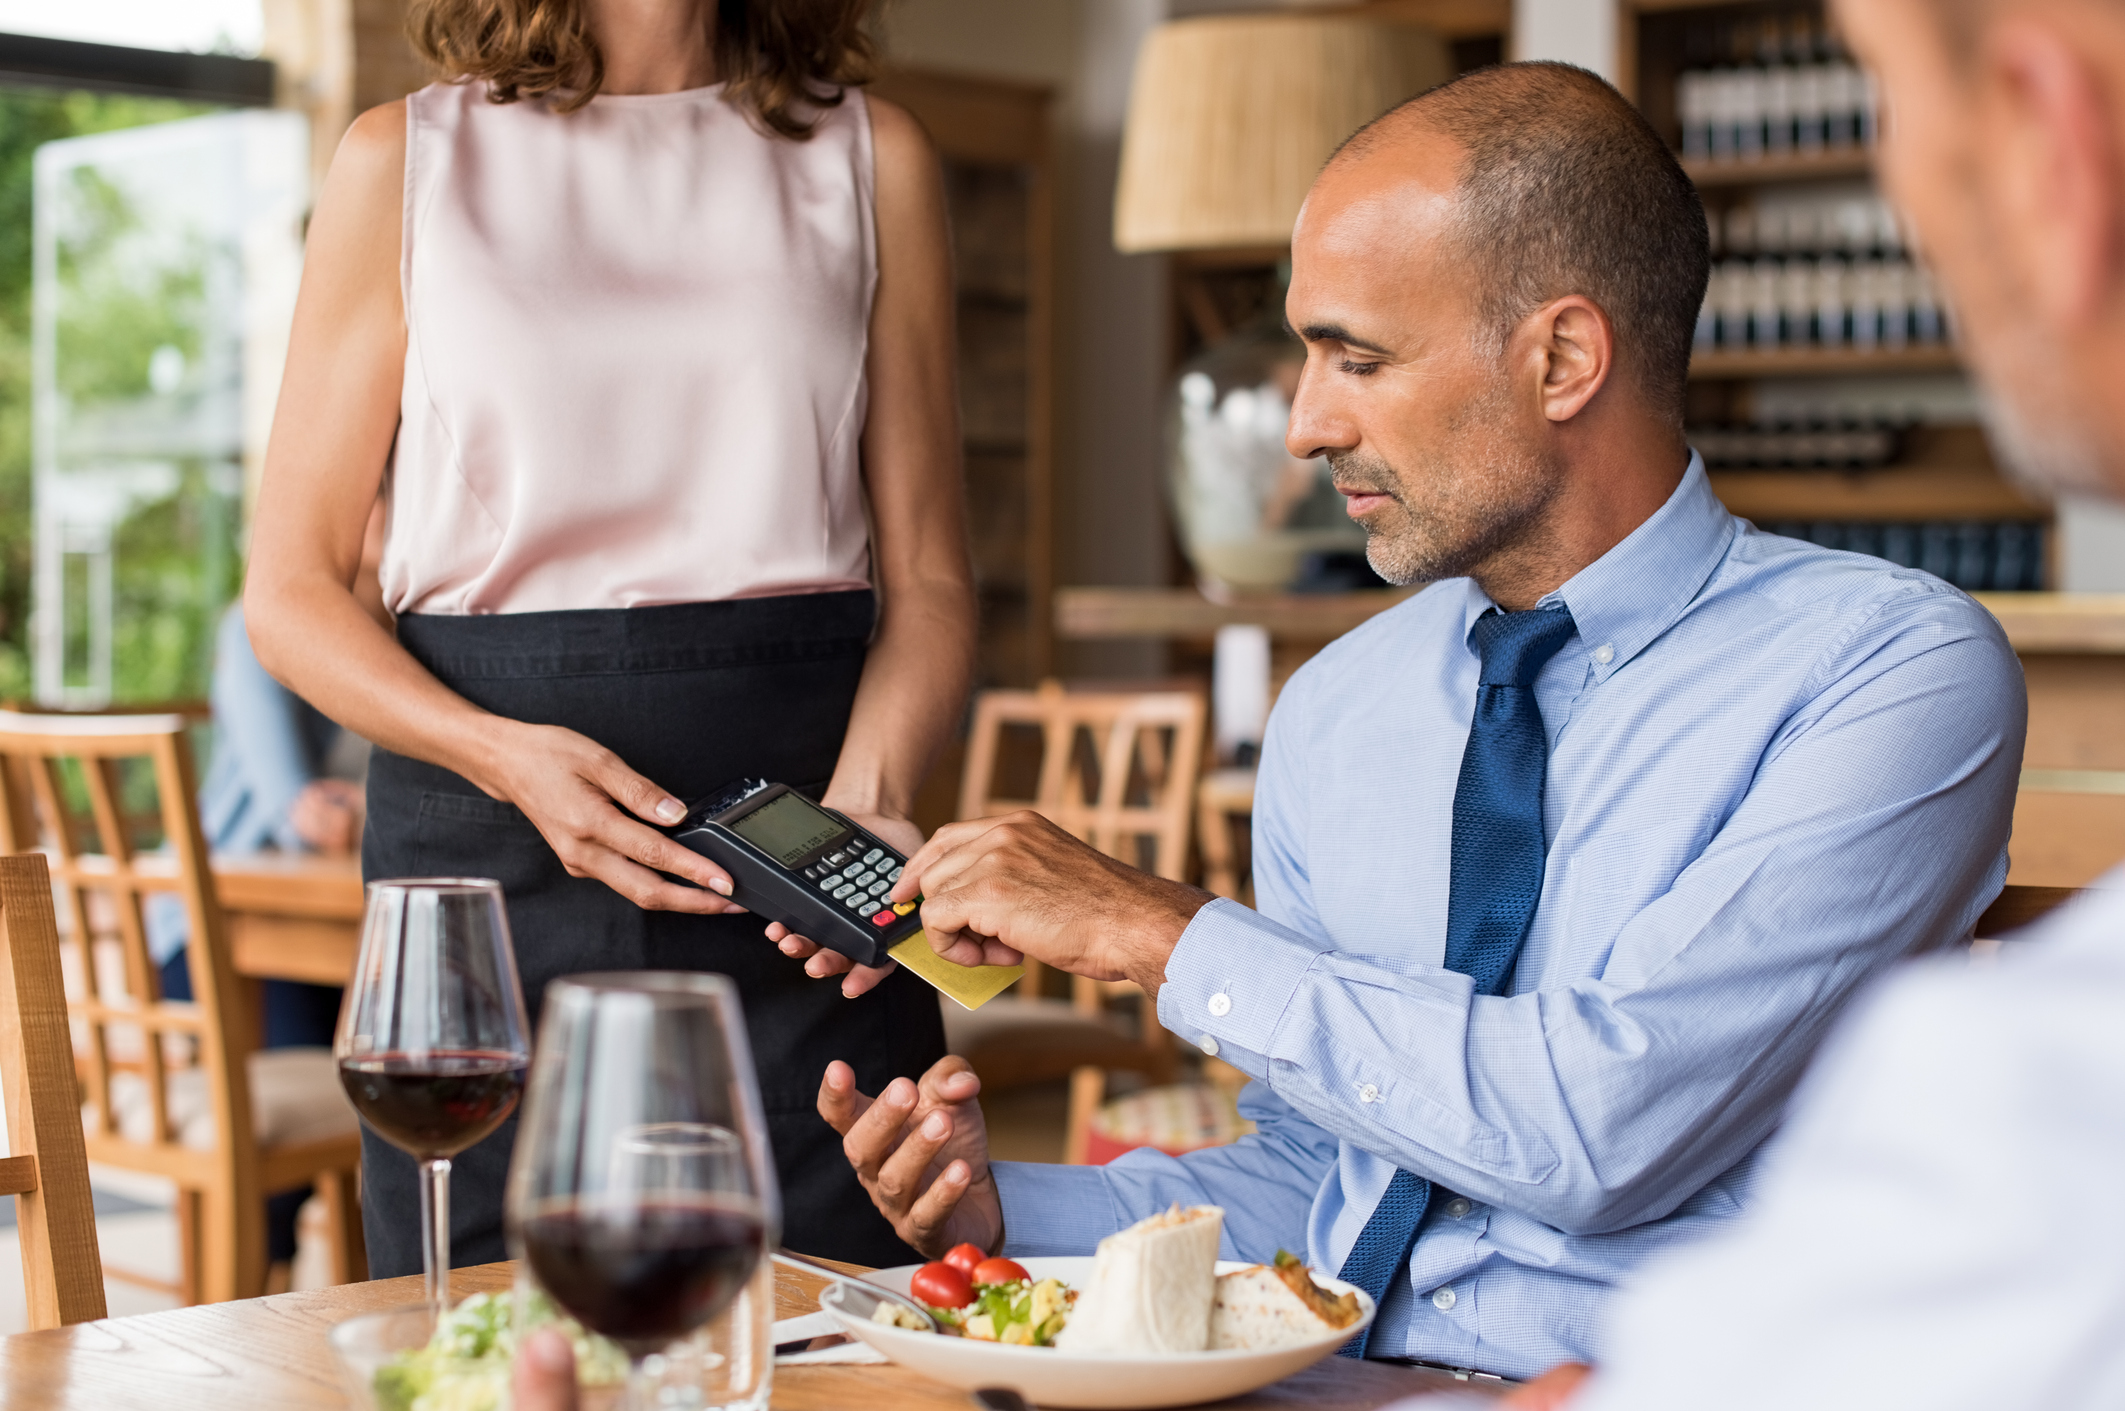 A businessman paying with a credit card at a restaurant.